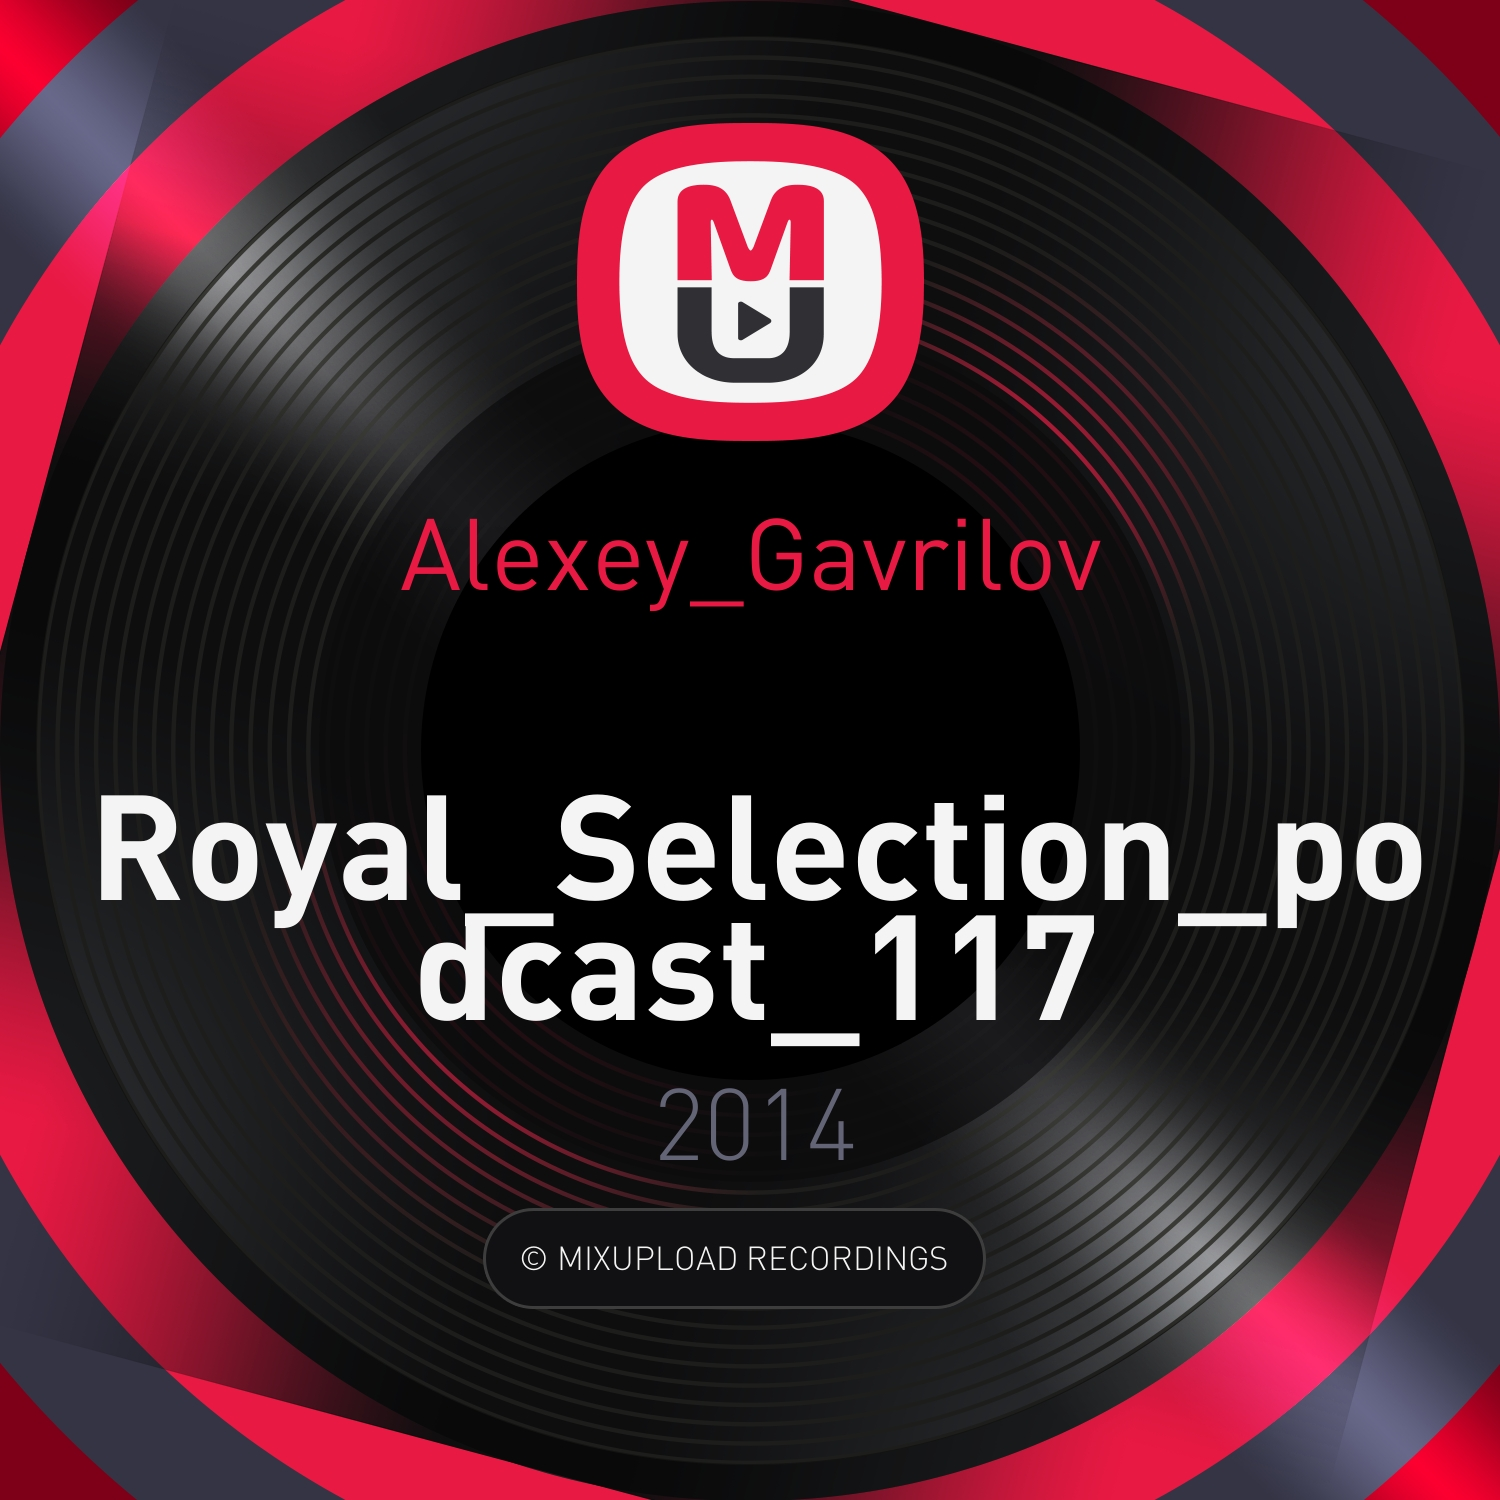 Alexey Gavrilov - Royal Selection podcast 117 (Royal Selection podcast 117) (Royal_Selection_podcast_117)